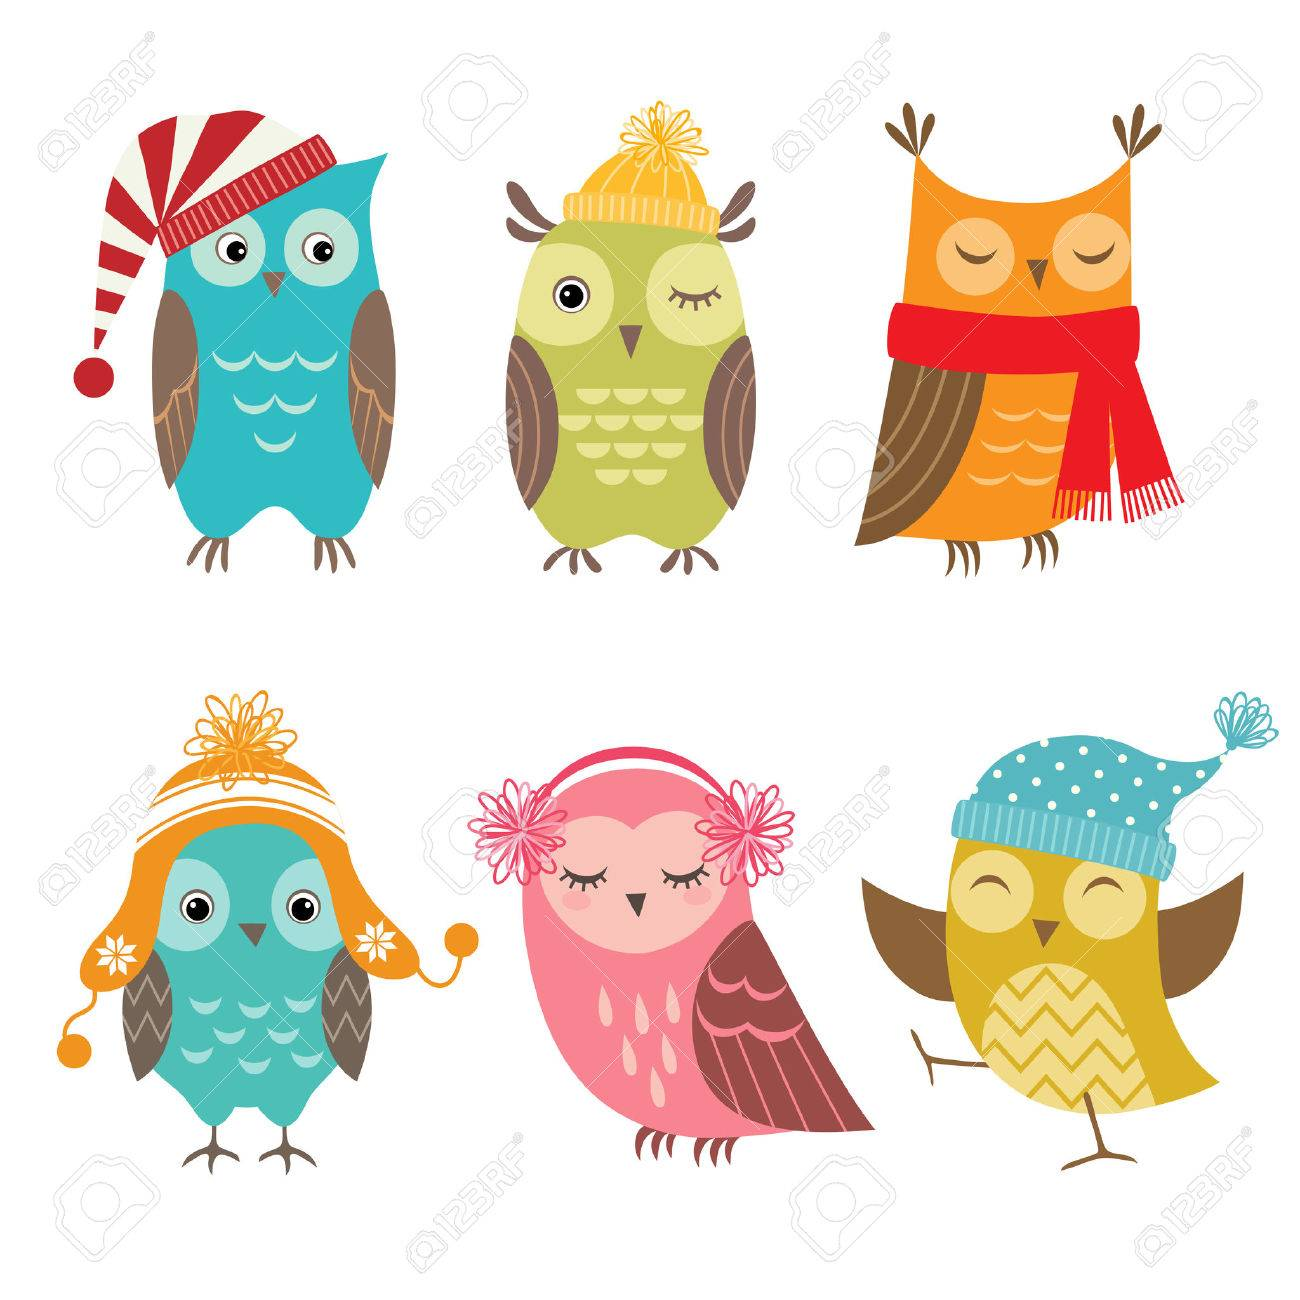 owl hat stock photos royalty free owl hat images and pictures